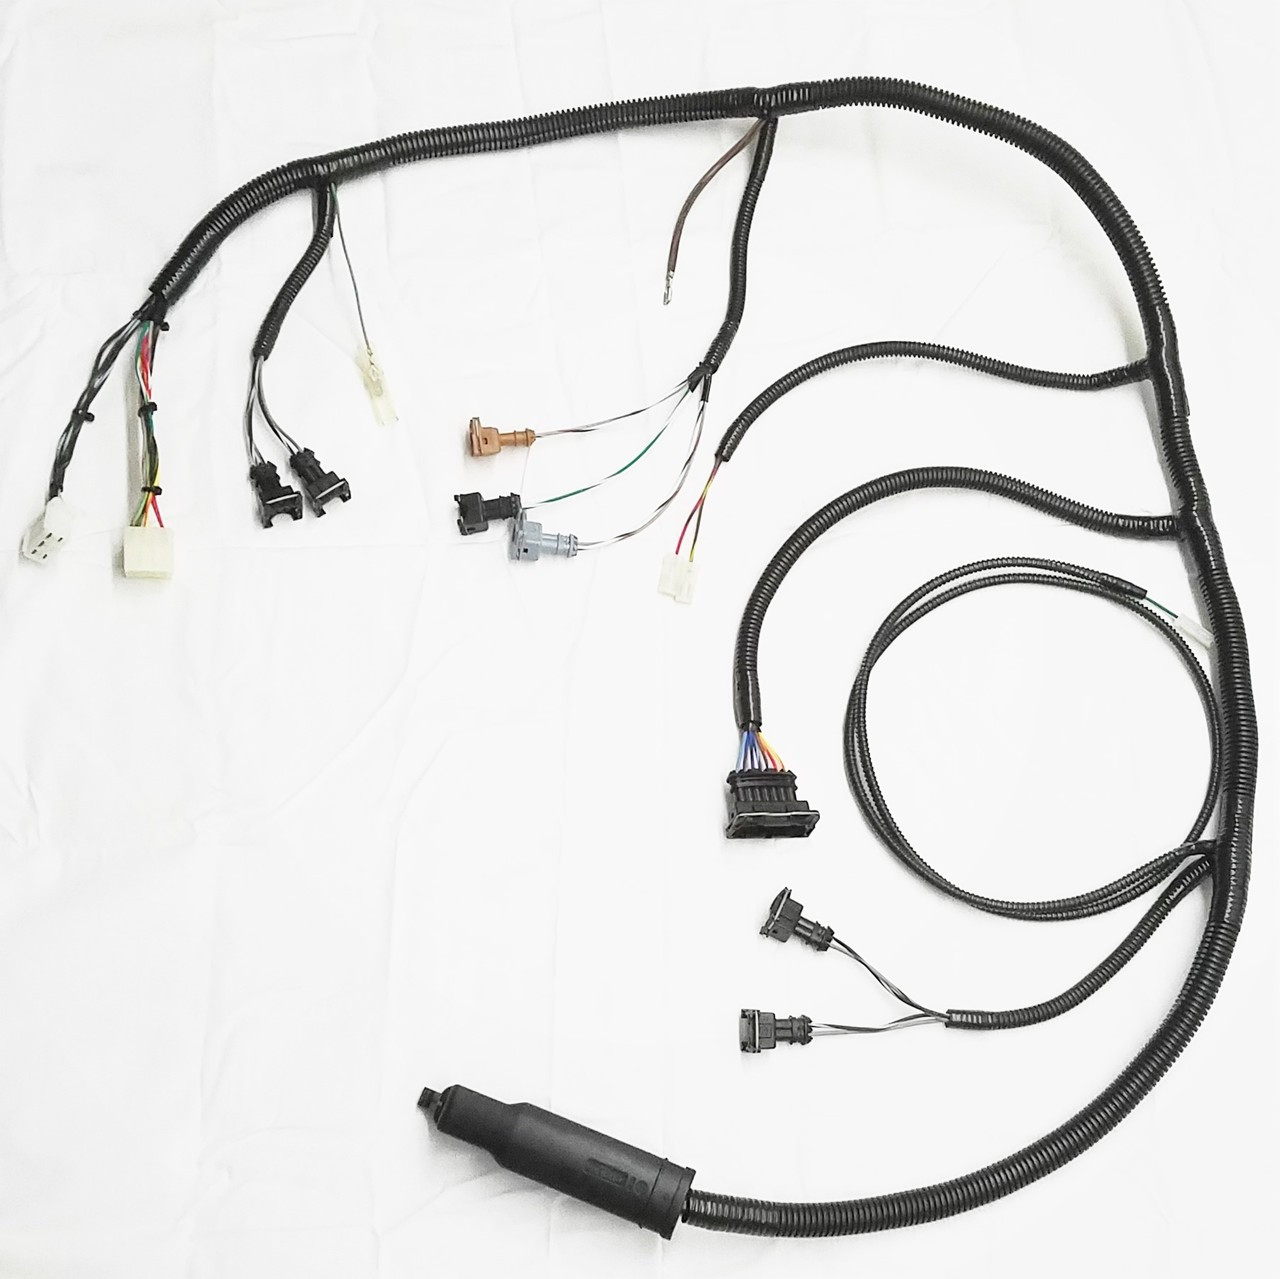 l jet fuel injection harness for vanagon kyle automotive specialties rh kyleautomotivespecialties com vanagon subaru wiring harness vanagon engine wiring harness